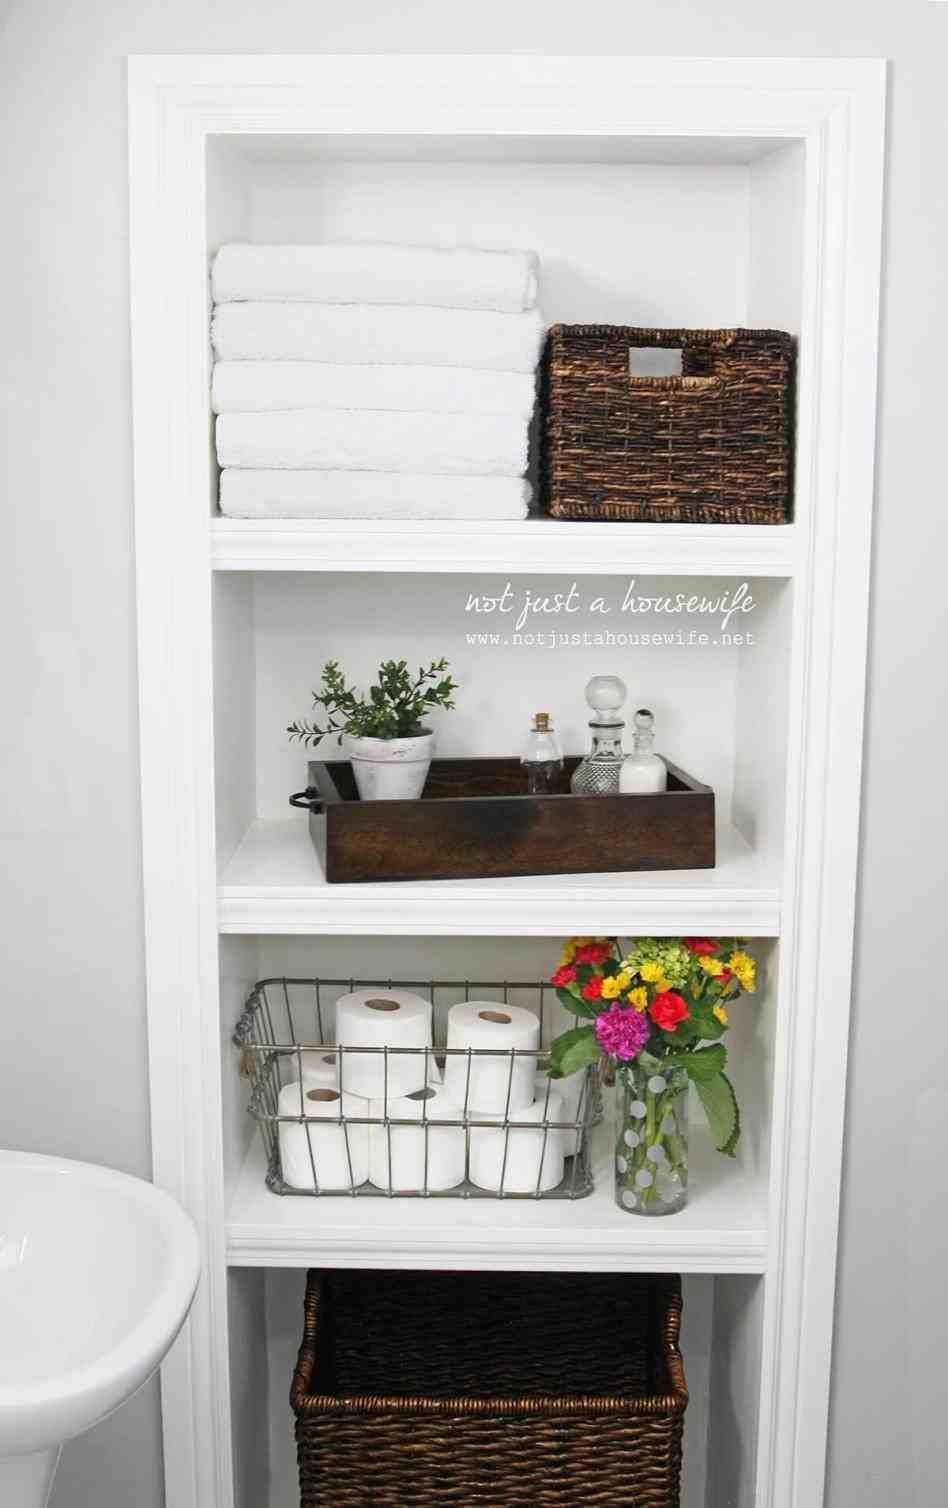 New Post small bathroom storage solutions visit ...